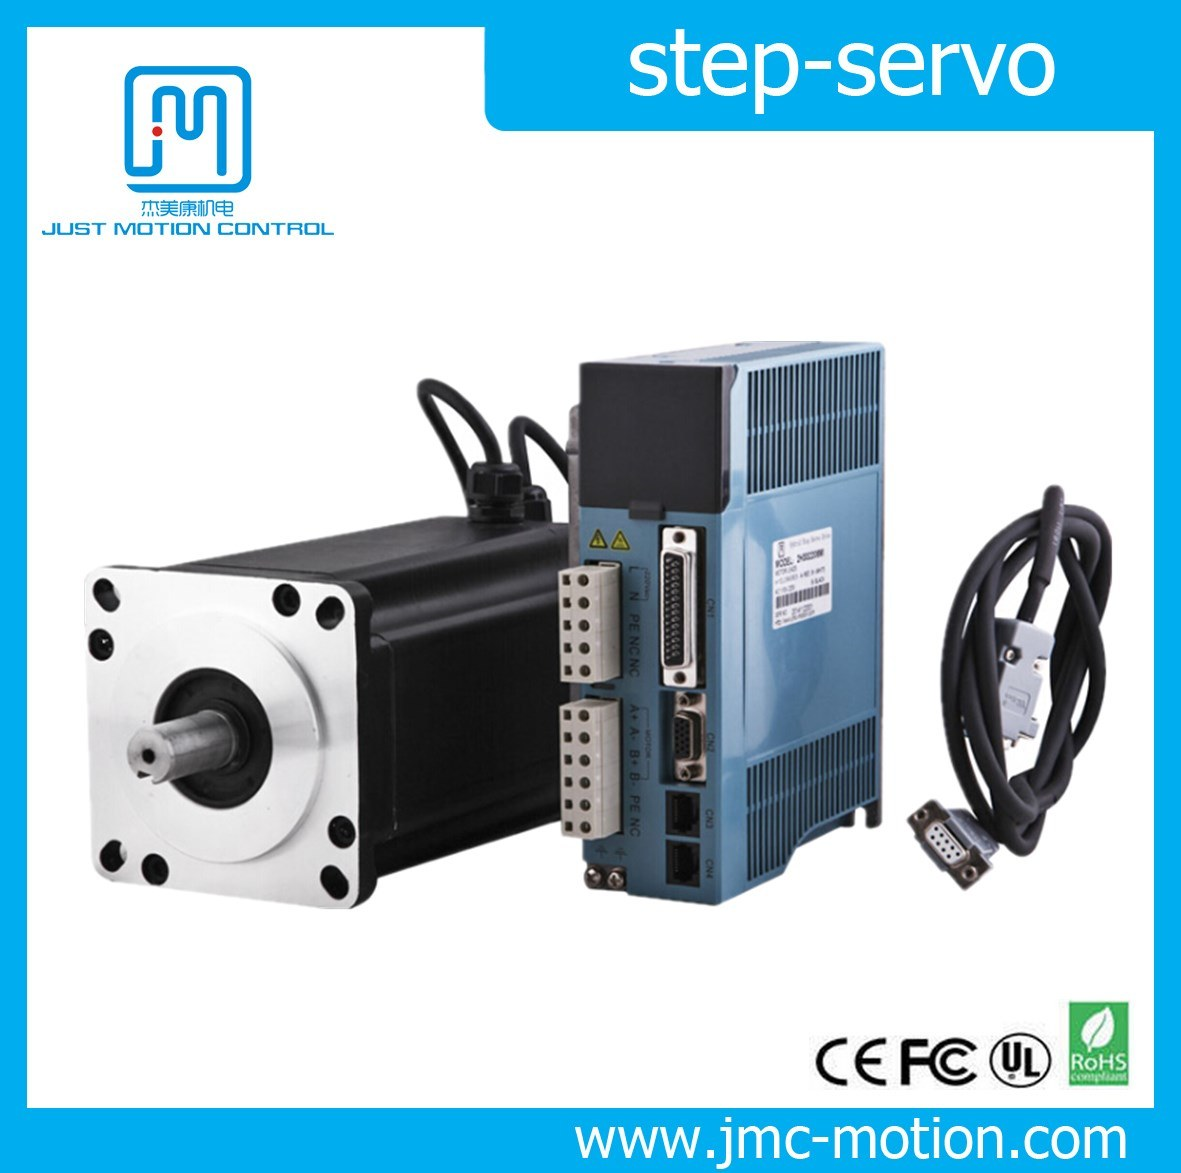 80-220VAC 2 Phase NEMA 34 Closed Loop Step-Servo Motor and Driver 2HSS1108h